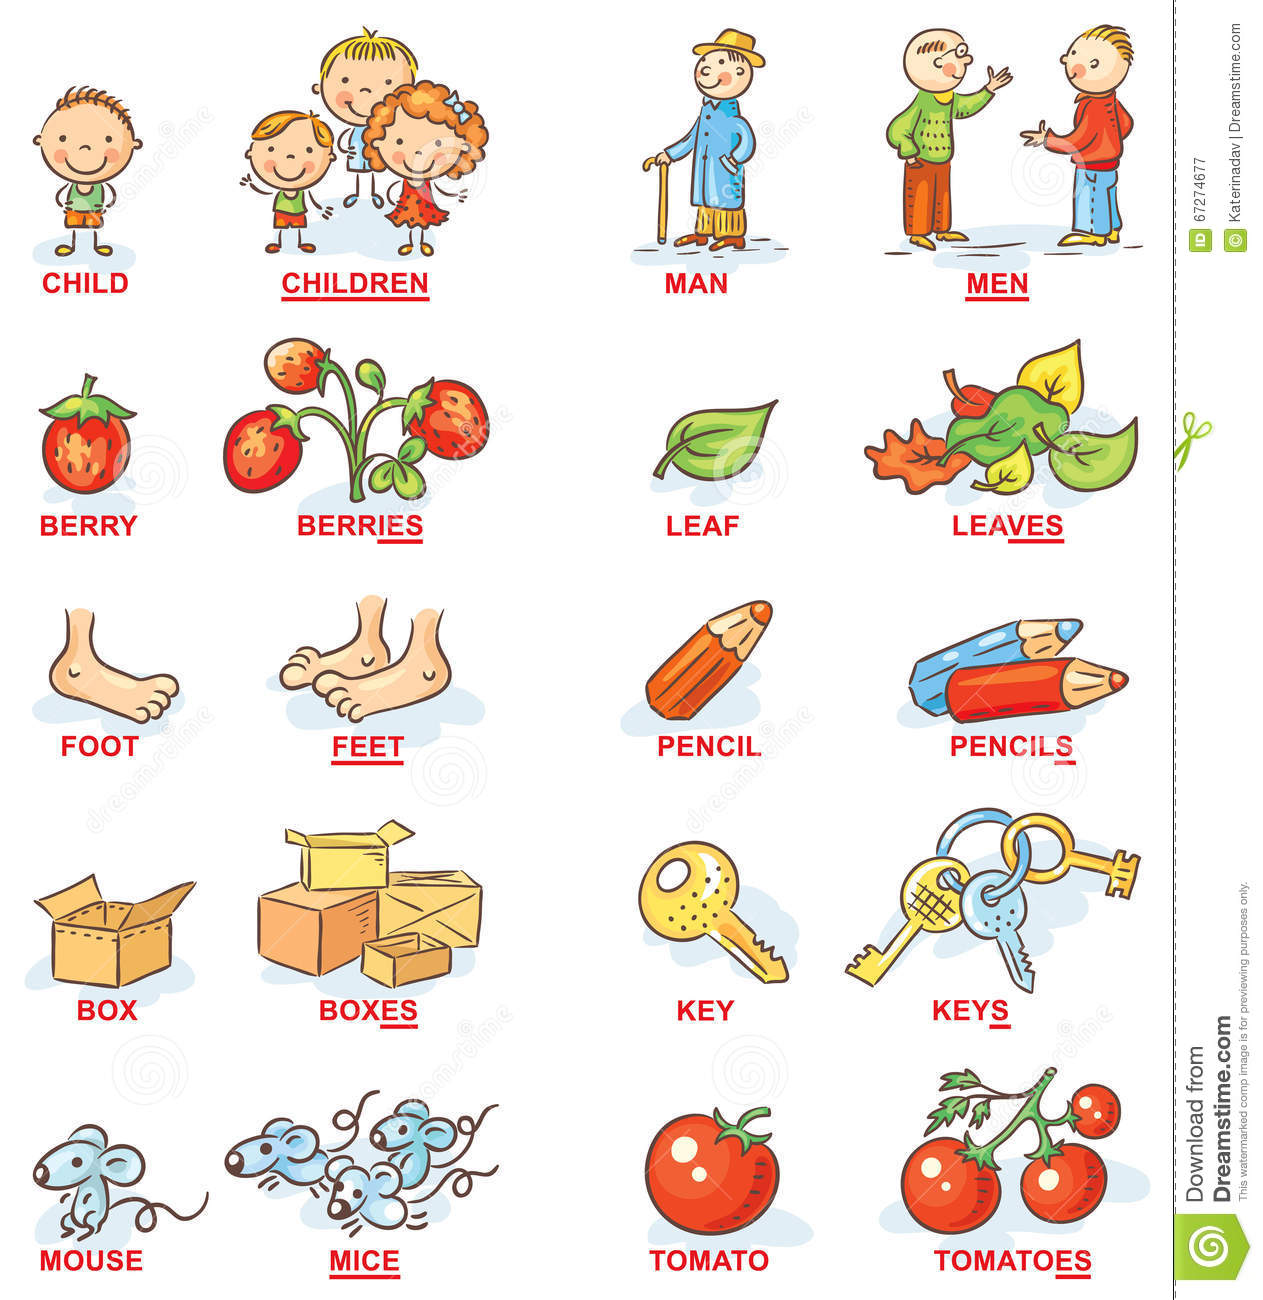 Plural Of Nouns In Colorful Cartoon Pictures Can Be Used As A Teaching Aid For Foreign Language